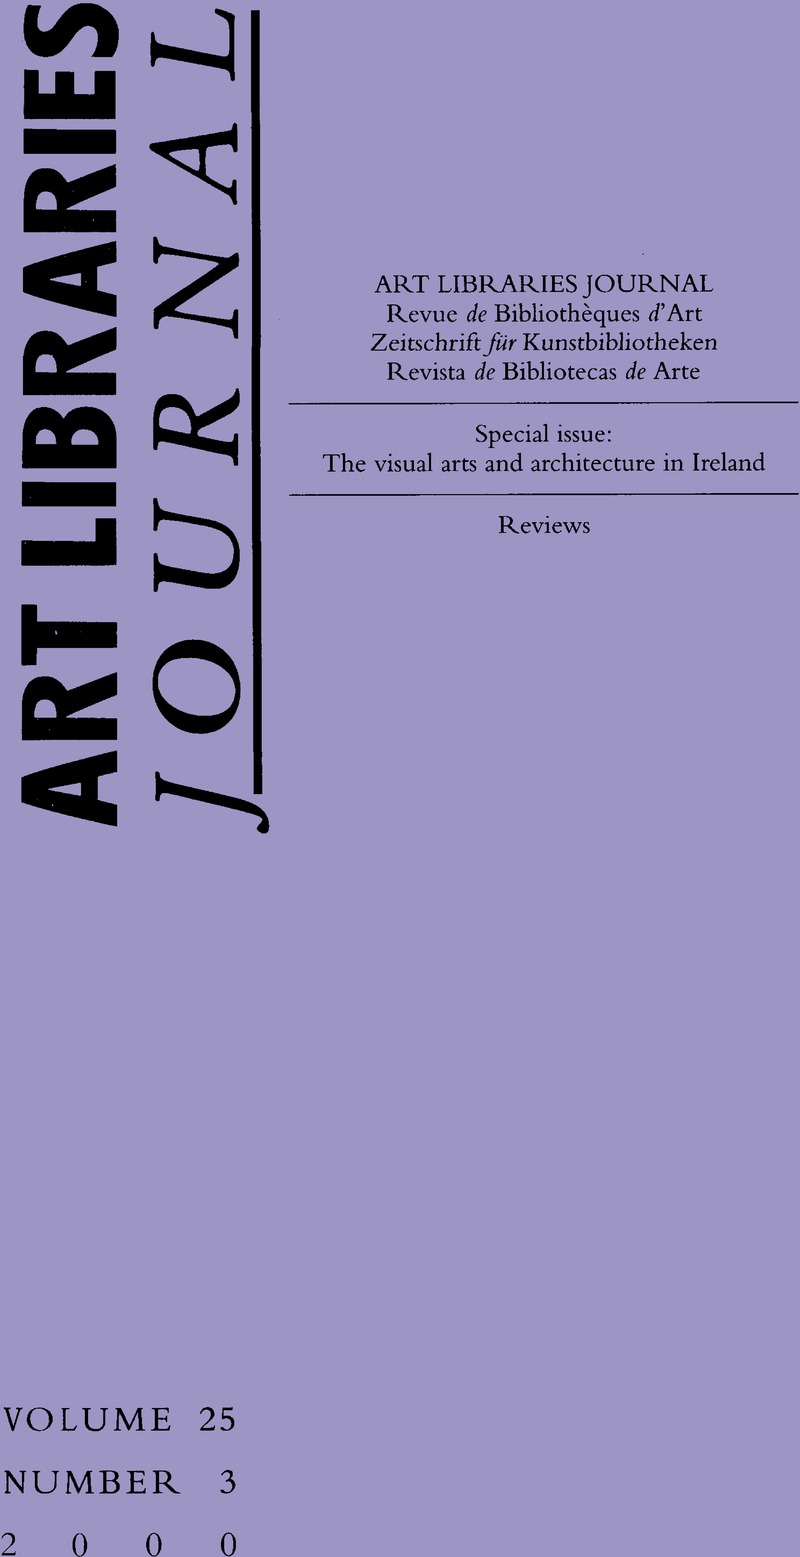 Arte Journal Weekend Alj Volume 25 Issue 3 Cover And Front Matter Art Libraries